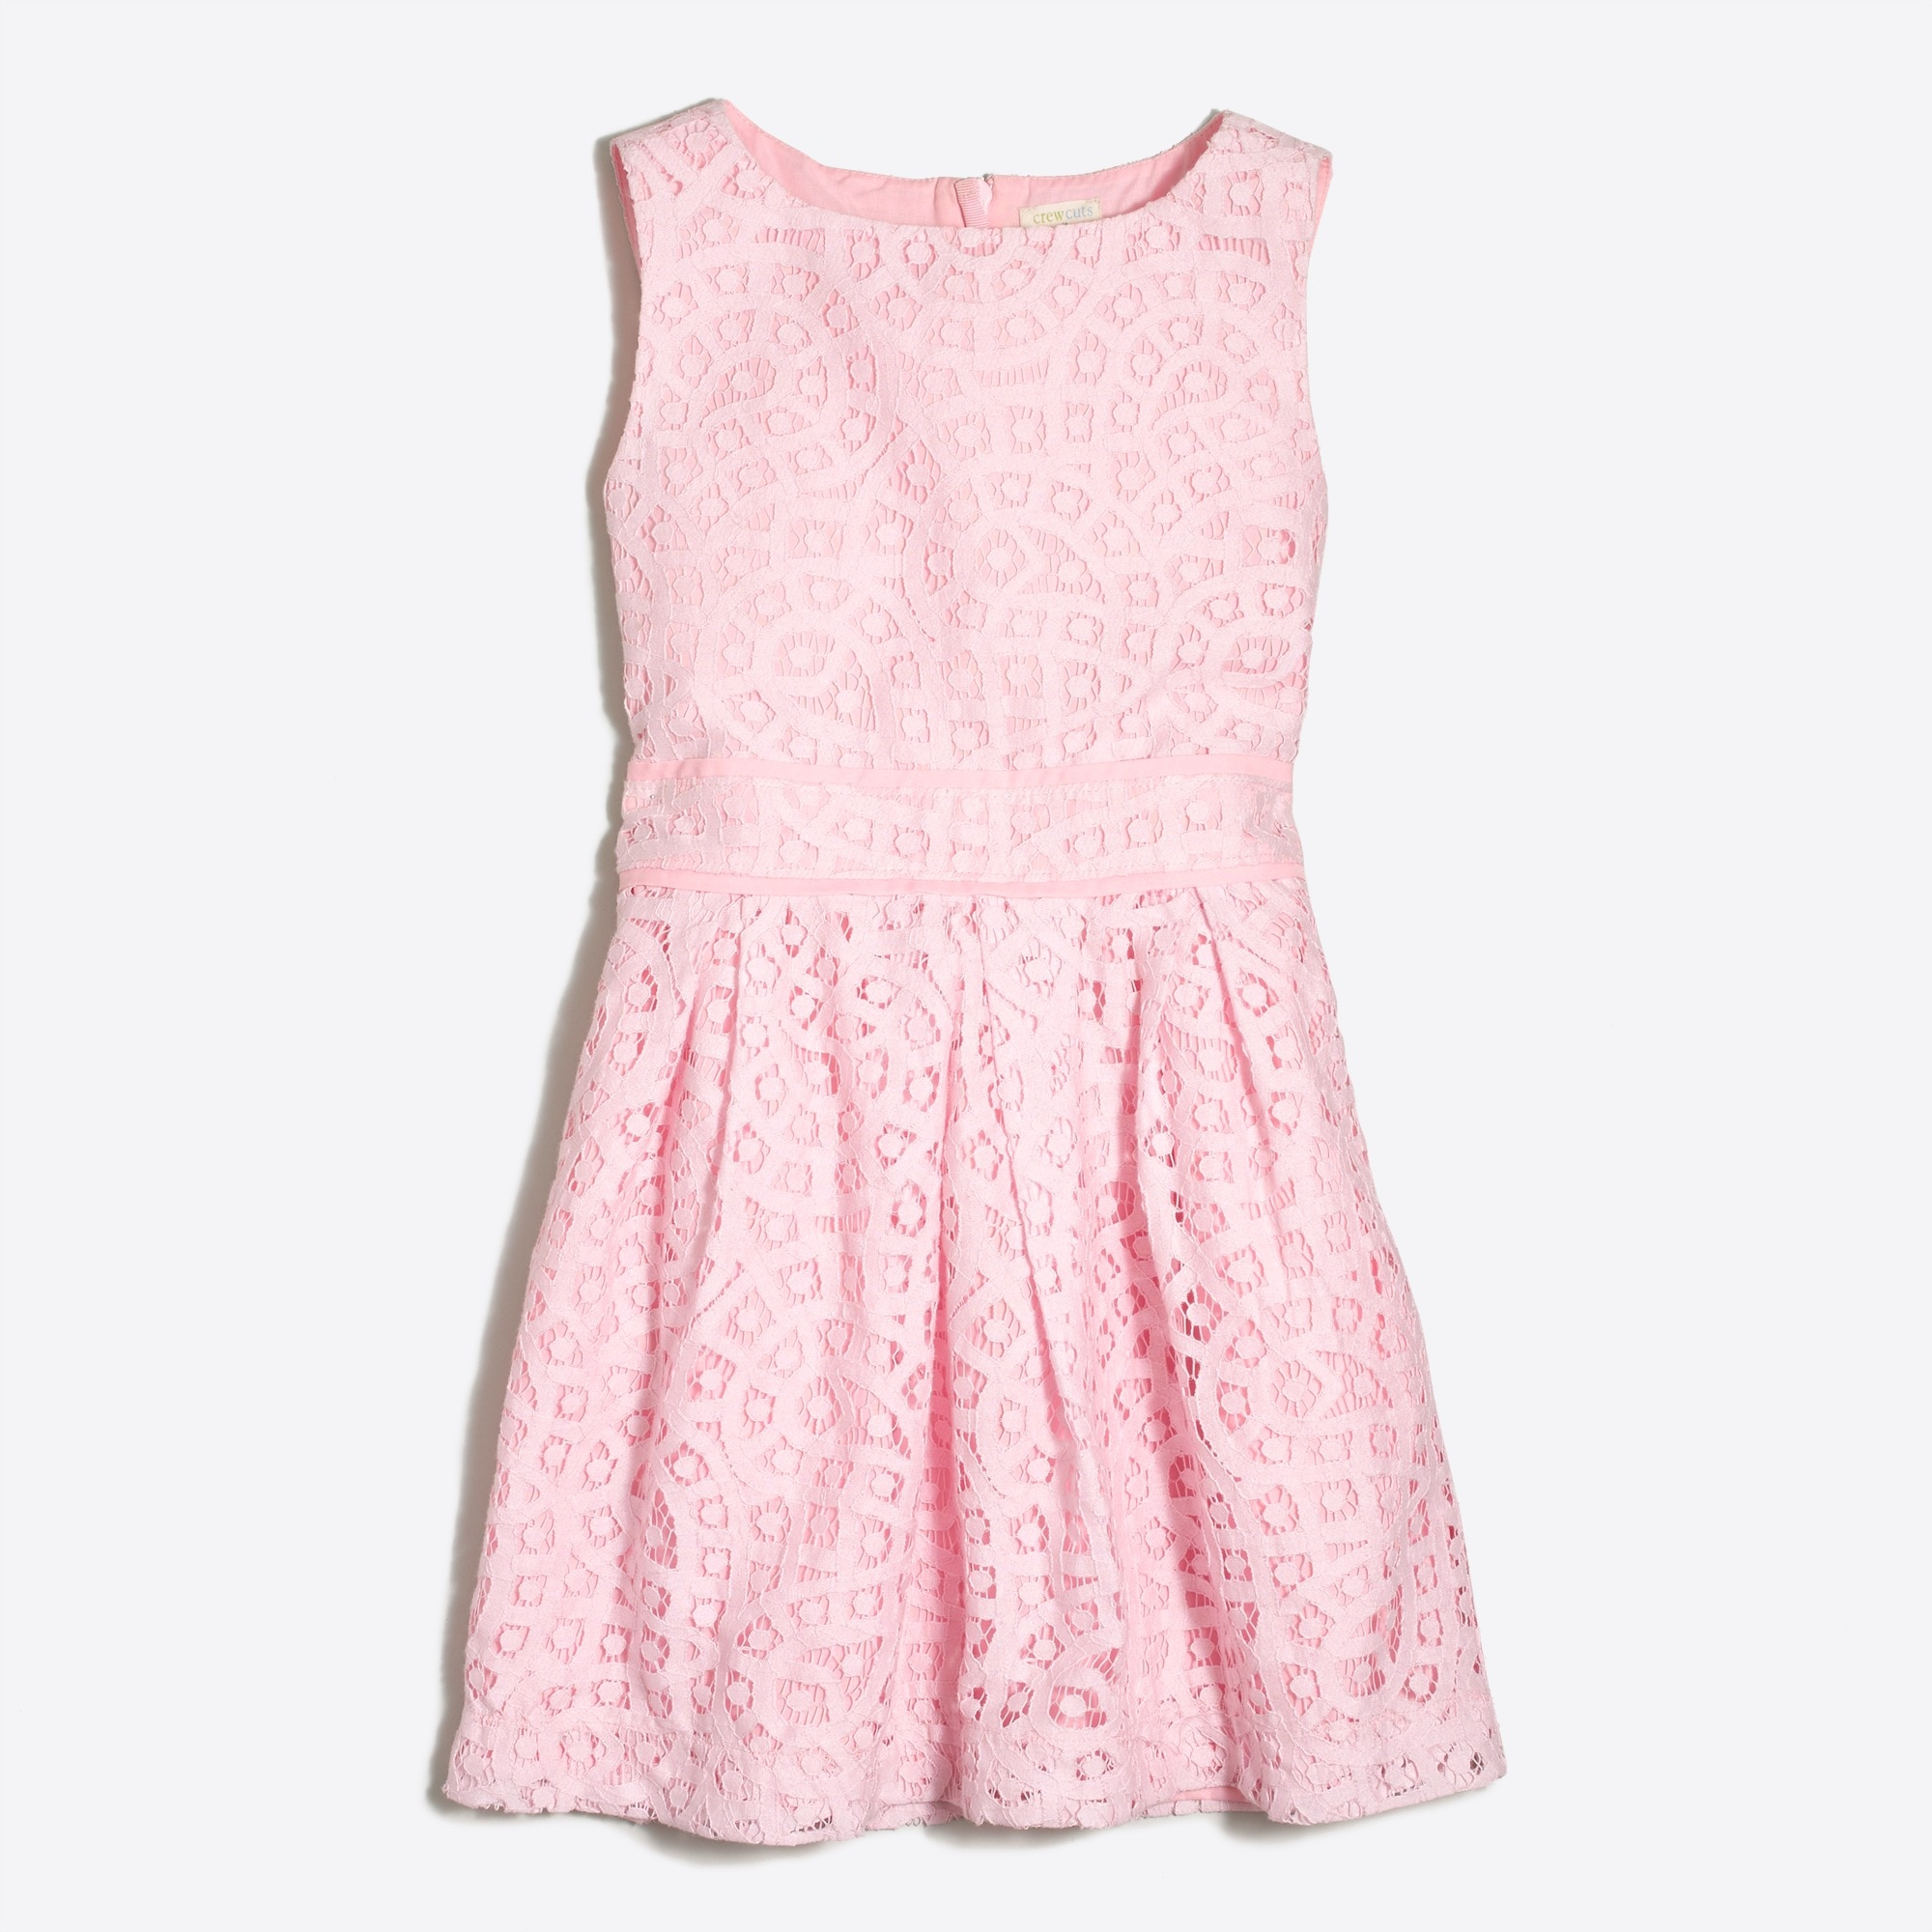 factory girls' pleated lace party dress : girls' dresses